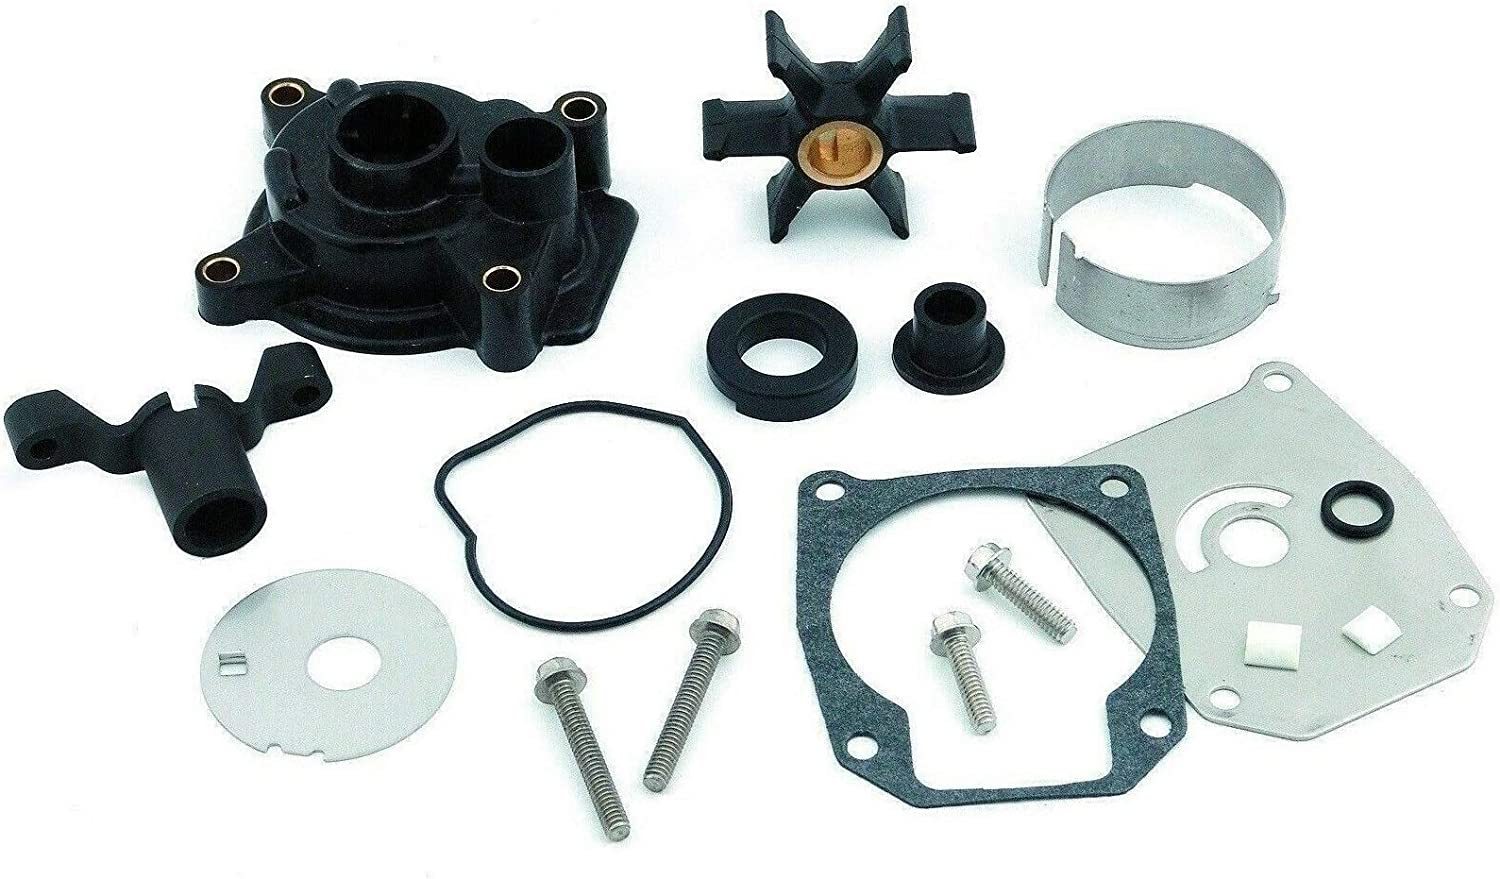 emp Water Pump Impeller Kit for Johnson Evinrude 40 50 55 60 HP 1984 1985 1986 1987 1988 Replaces 18-3399 439077 Please Read Product Description for Exact Application Information